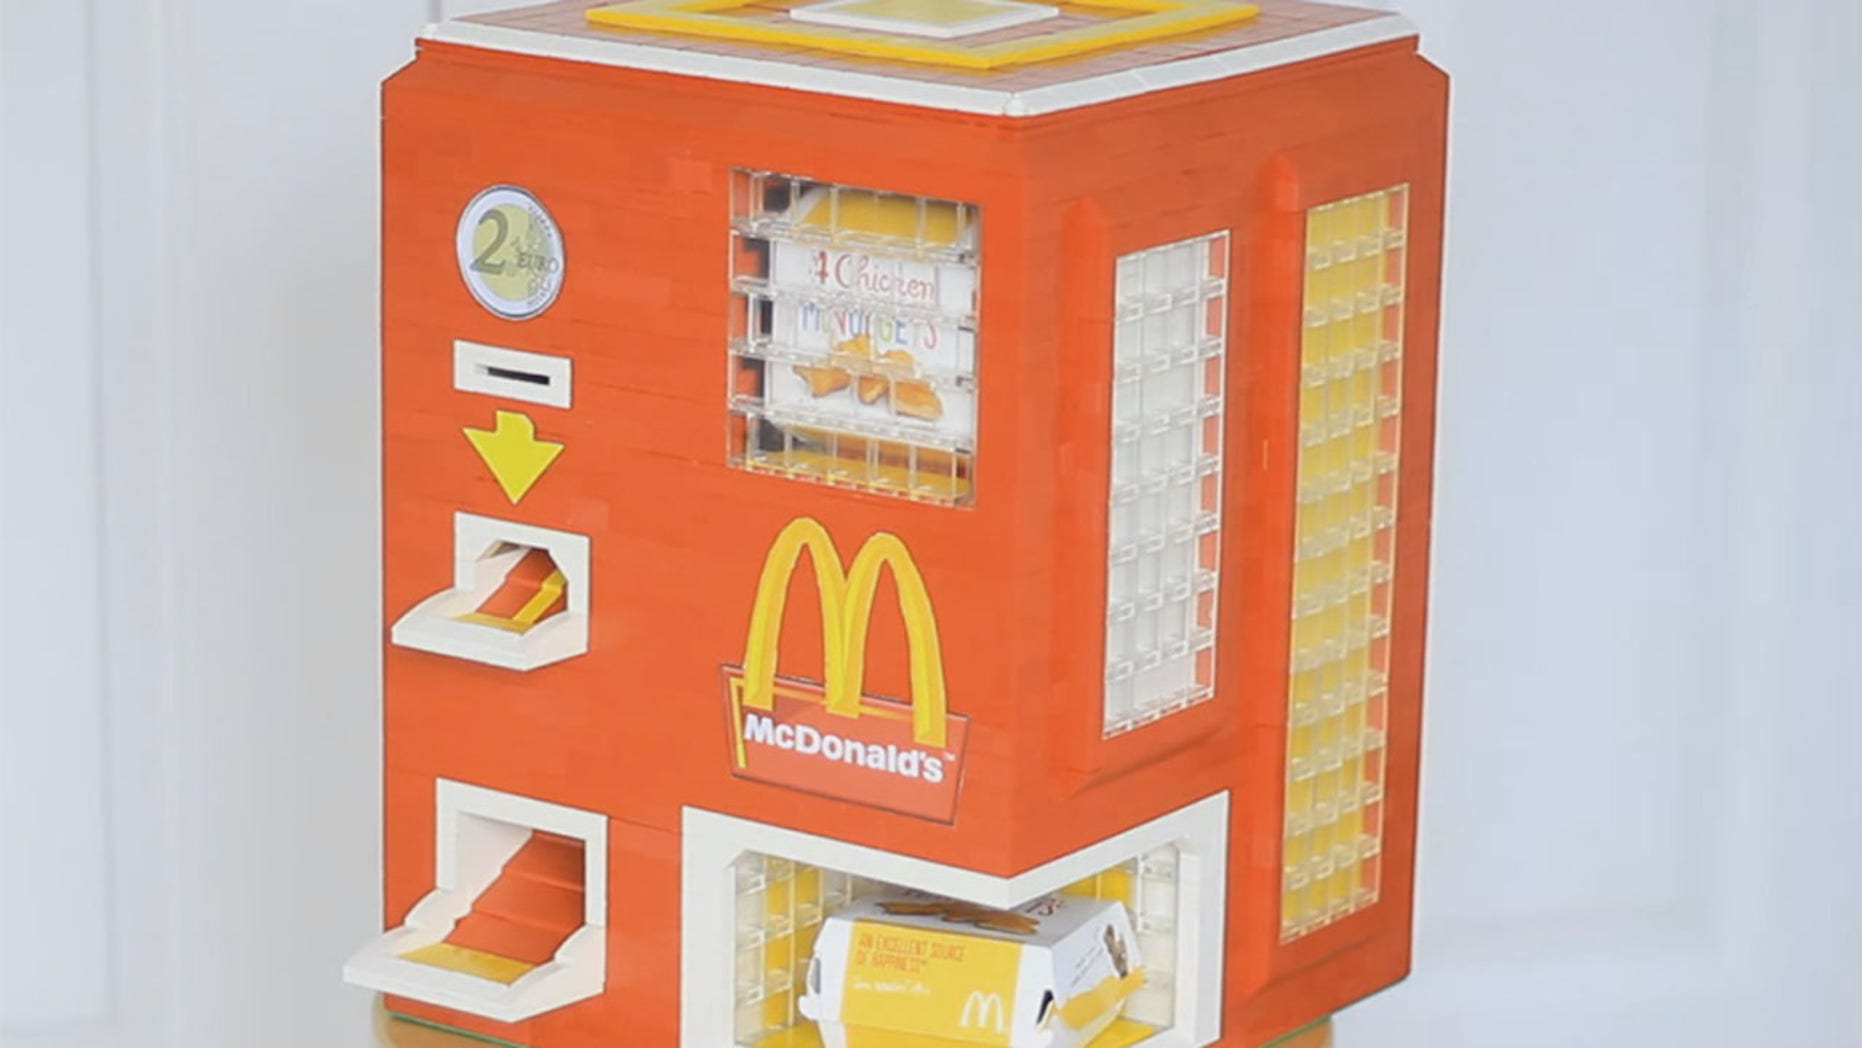 The Lego builders over at YouTube channel Astonishing Studios made a dispenser that gives out an order of chicken nuggets with dipping sauce.